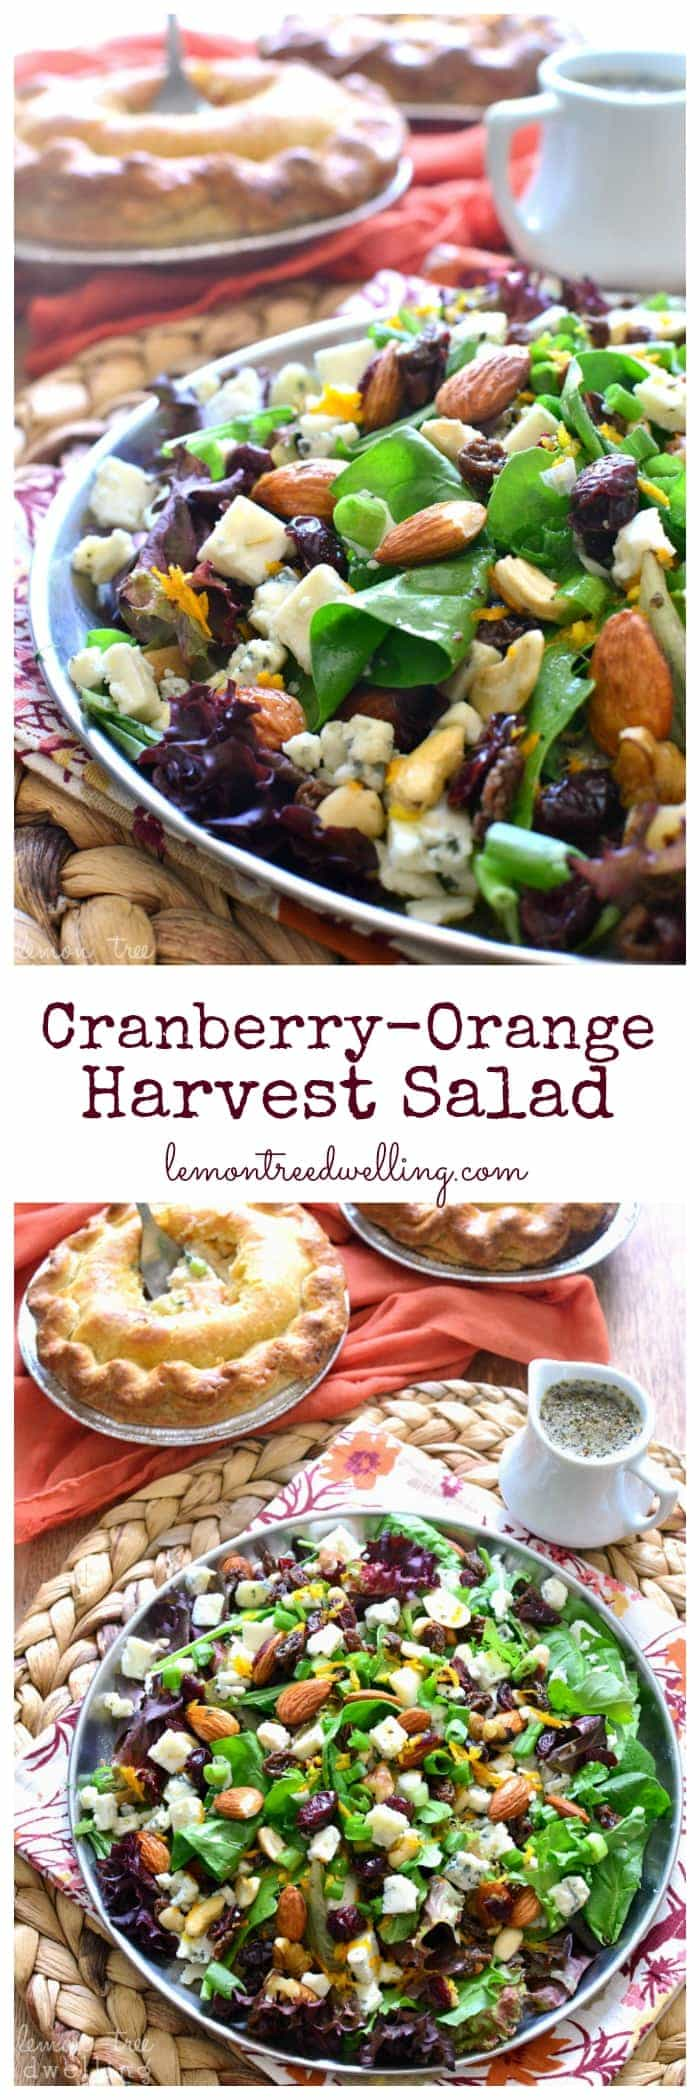 This Cranberry-Orange Harvest Salad combines mixed greens with dried fruit & nuts, gorgonzola cheese, and a zesty orange vinaigrette. It's packed with flavor, perfect for fall, and delicious served with Pick 'n Save Pot Pies! #mypicknsave #spon